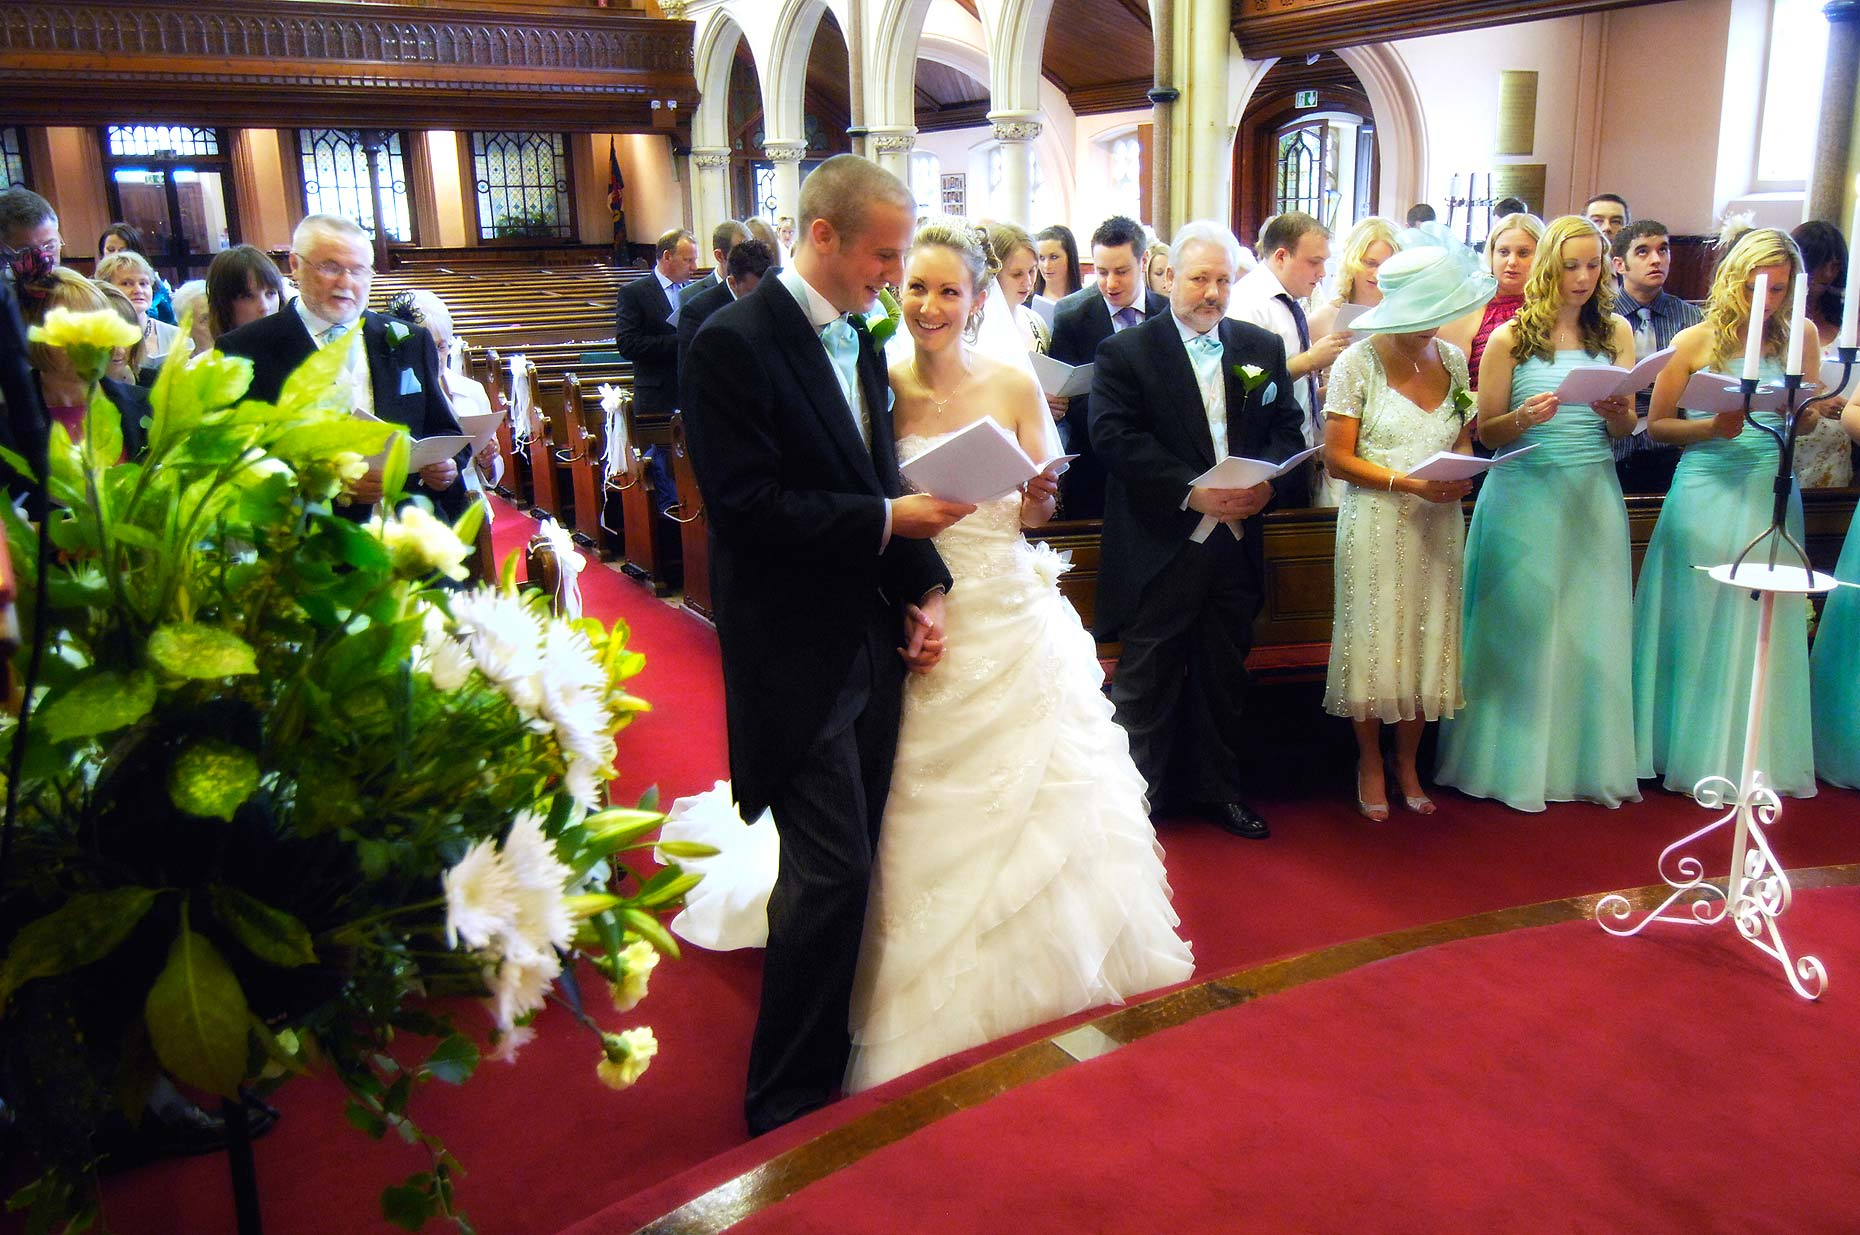 0186-Wedding-Ceremony-at-St-Andrews-Church-Bournemouth-Dorset.jpg